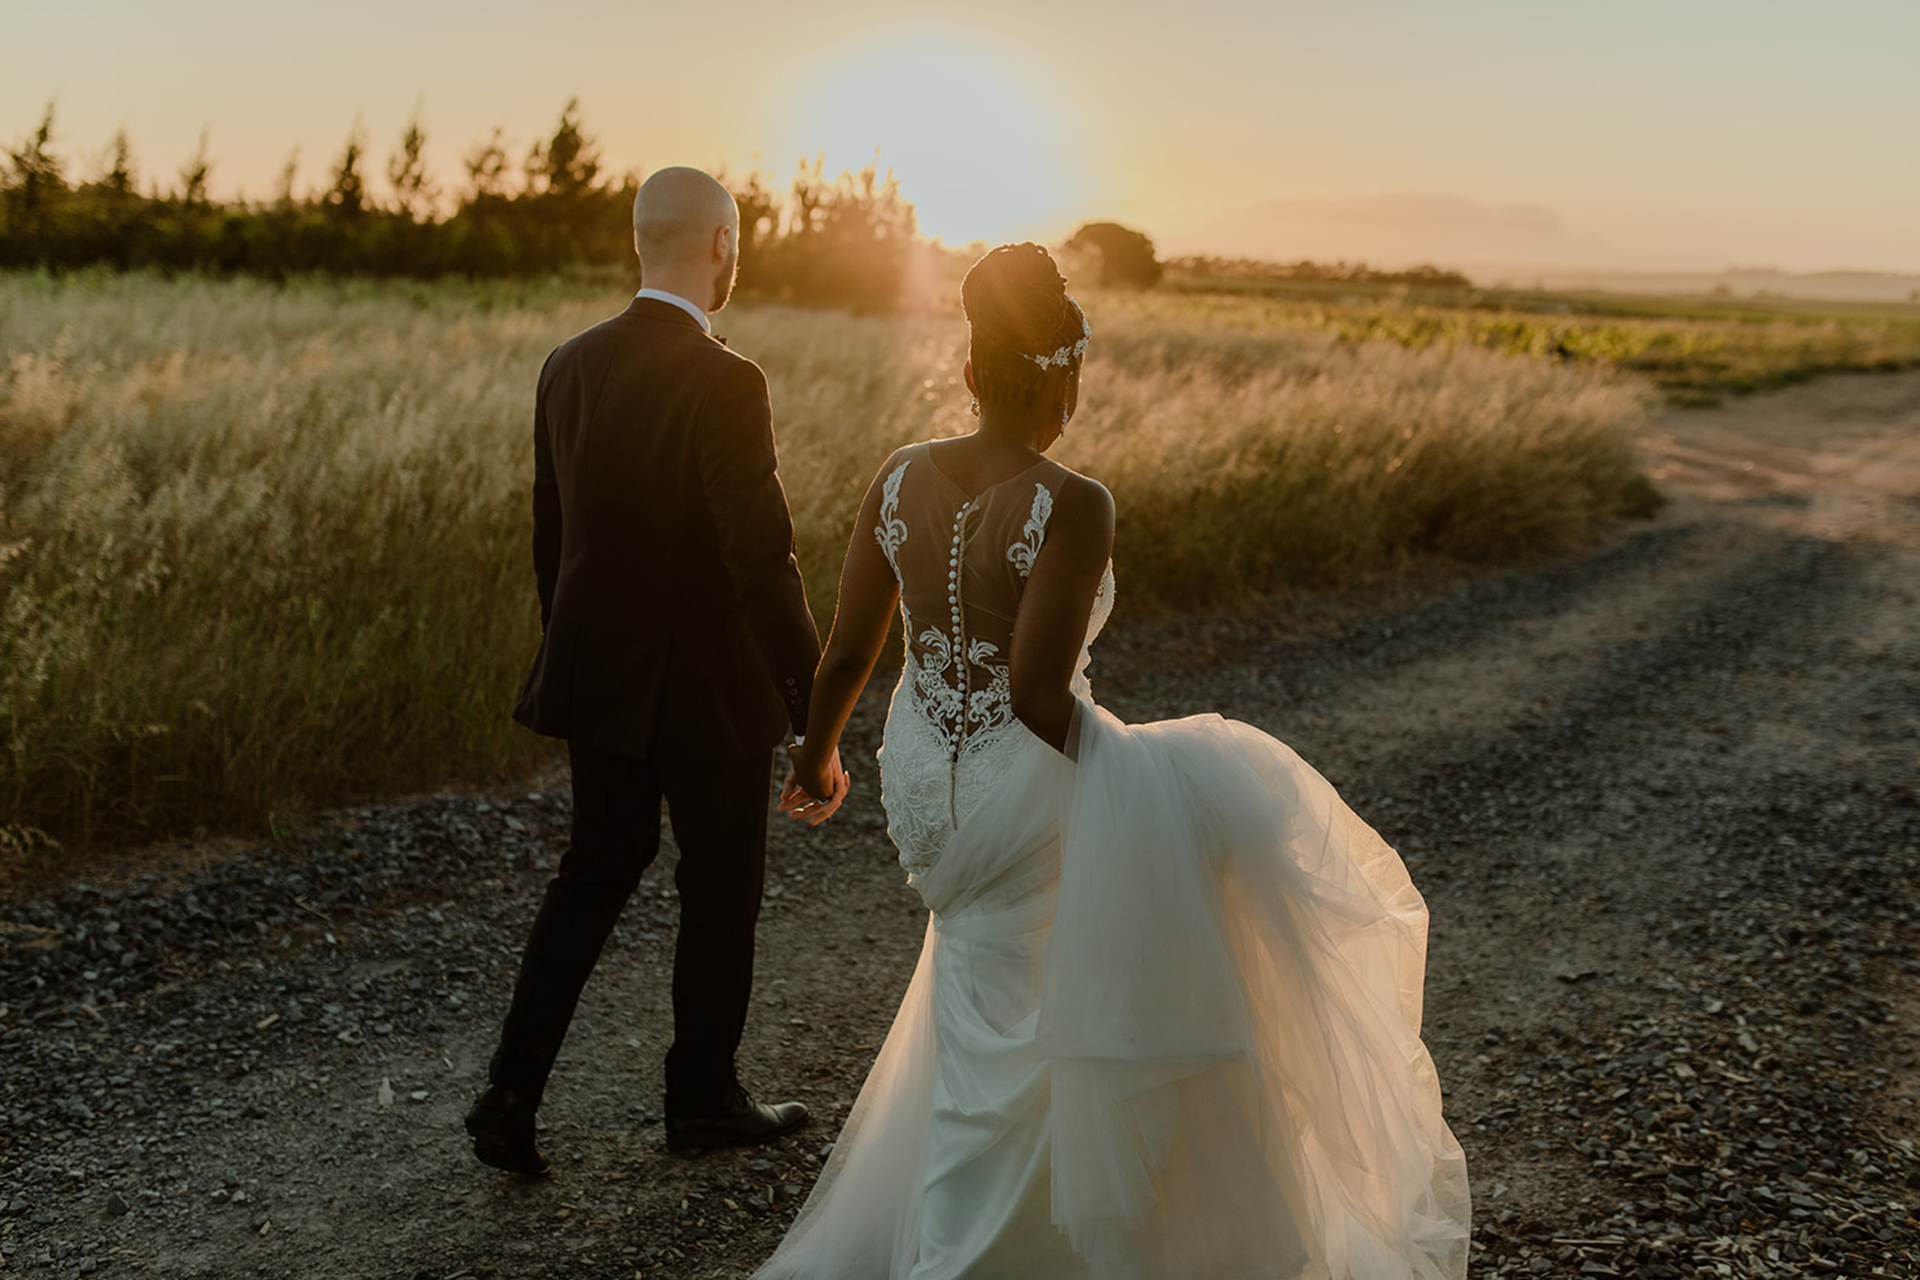 Husband and wife walking off into the sunset